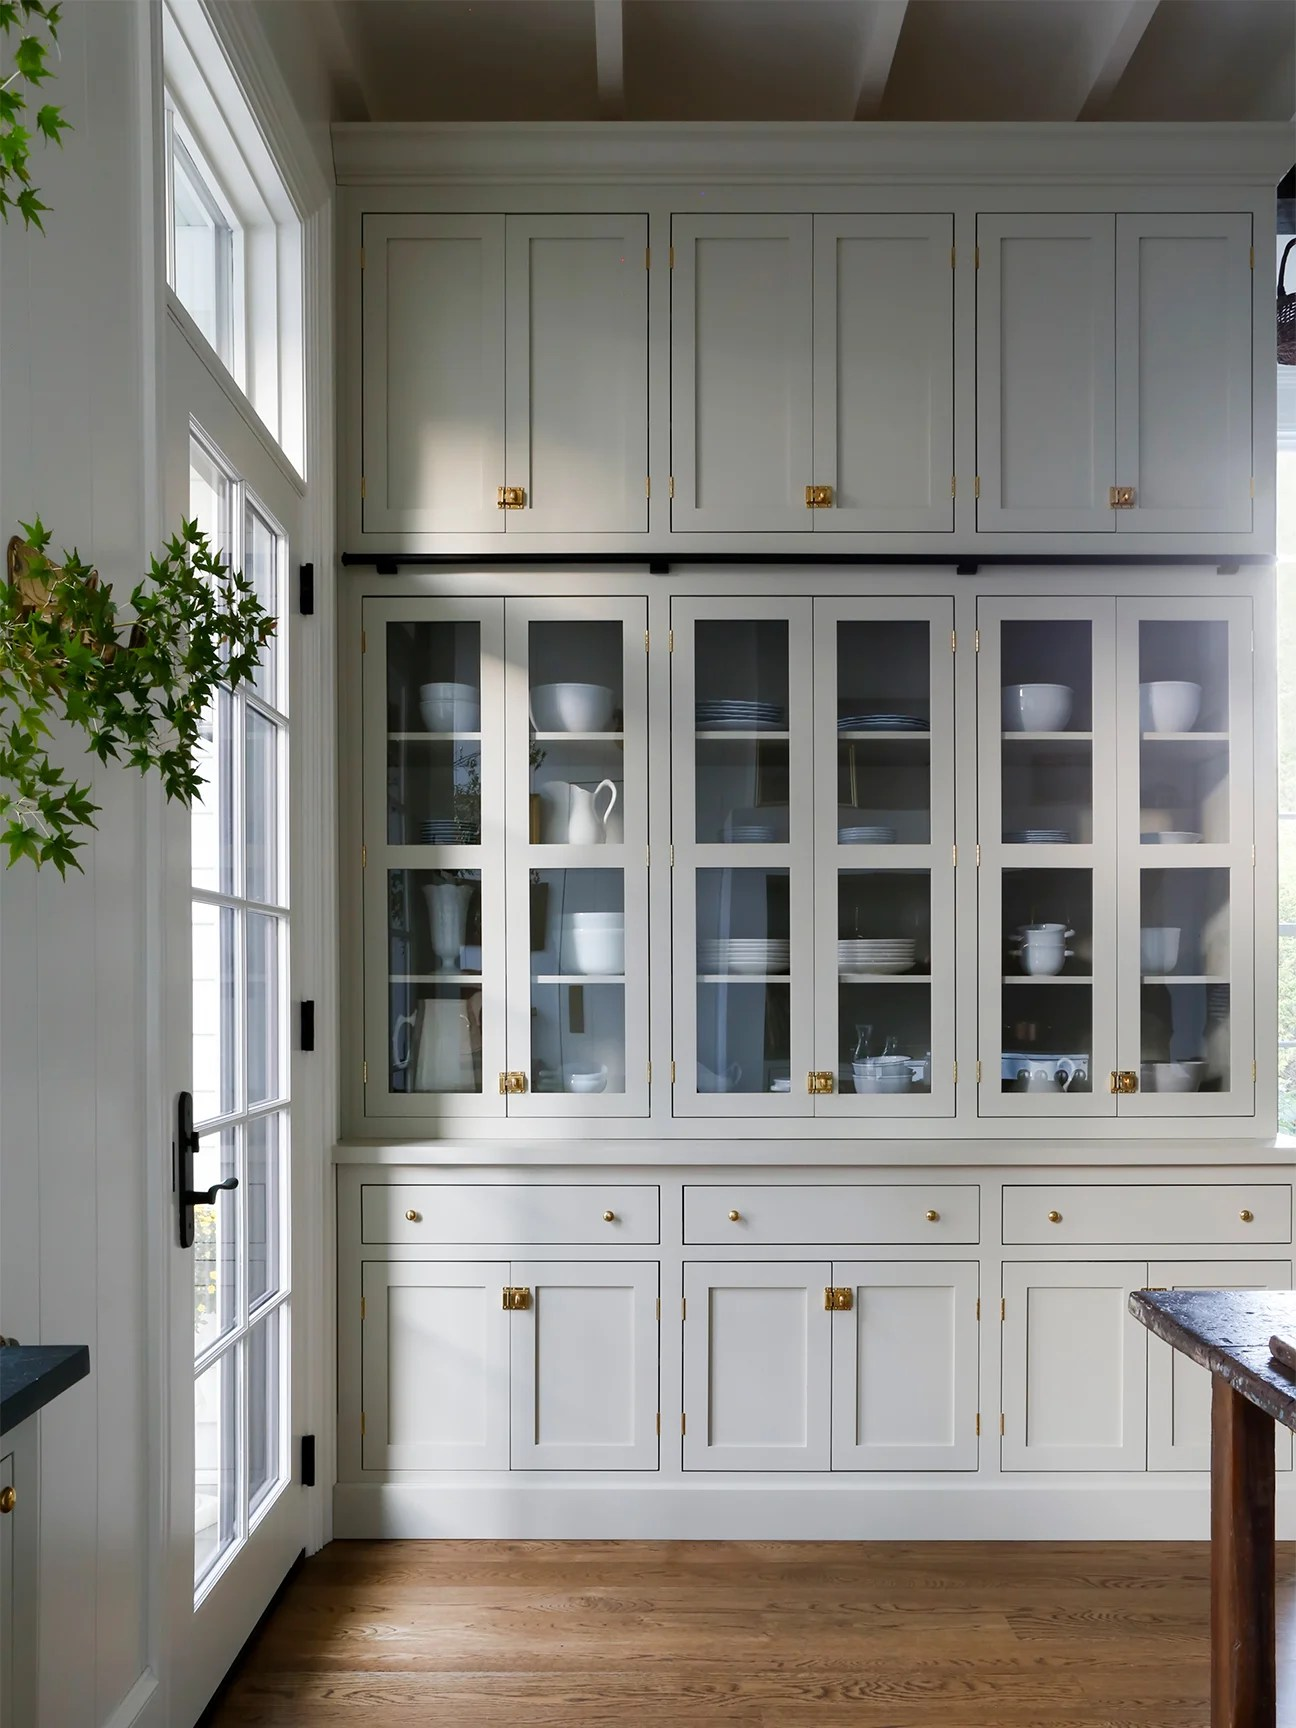 7 Farmhouse Kitchen Cabinets That Are Here To Charm